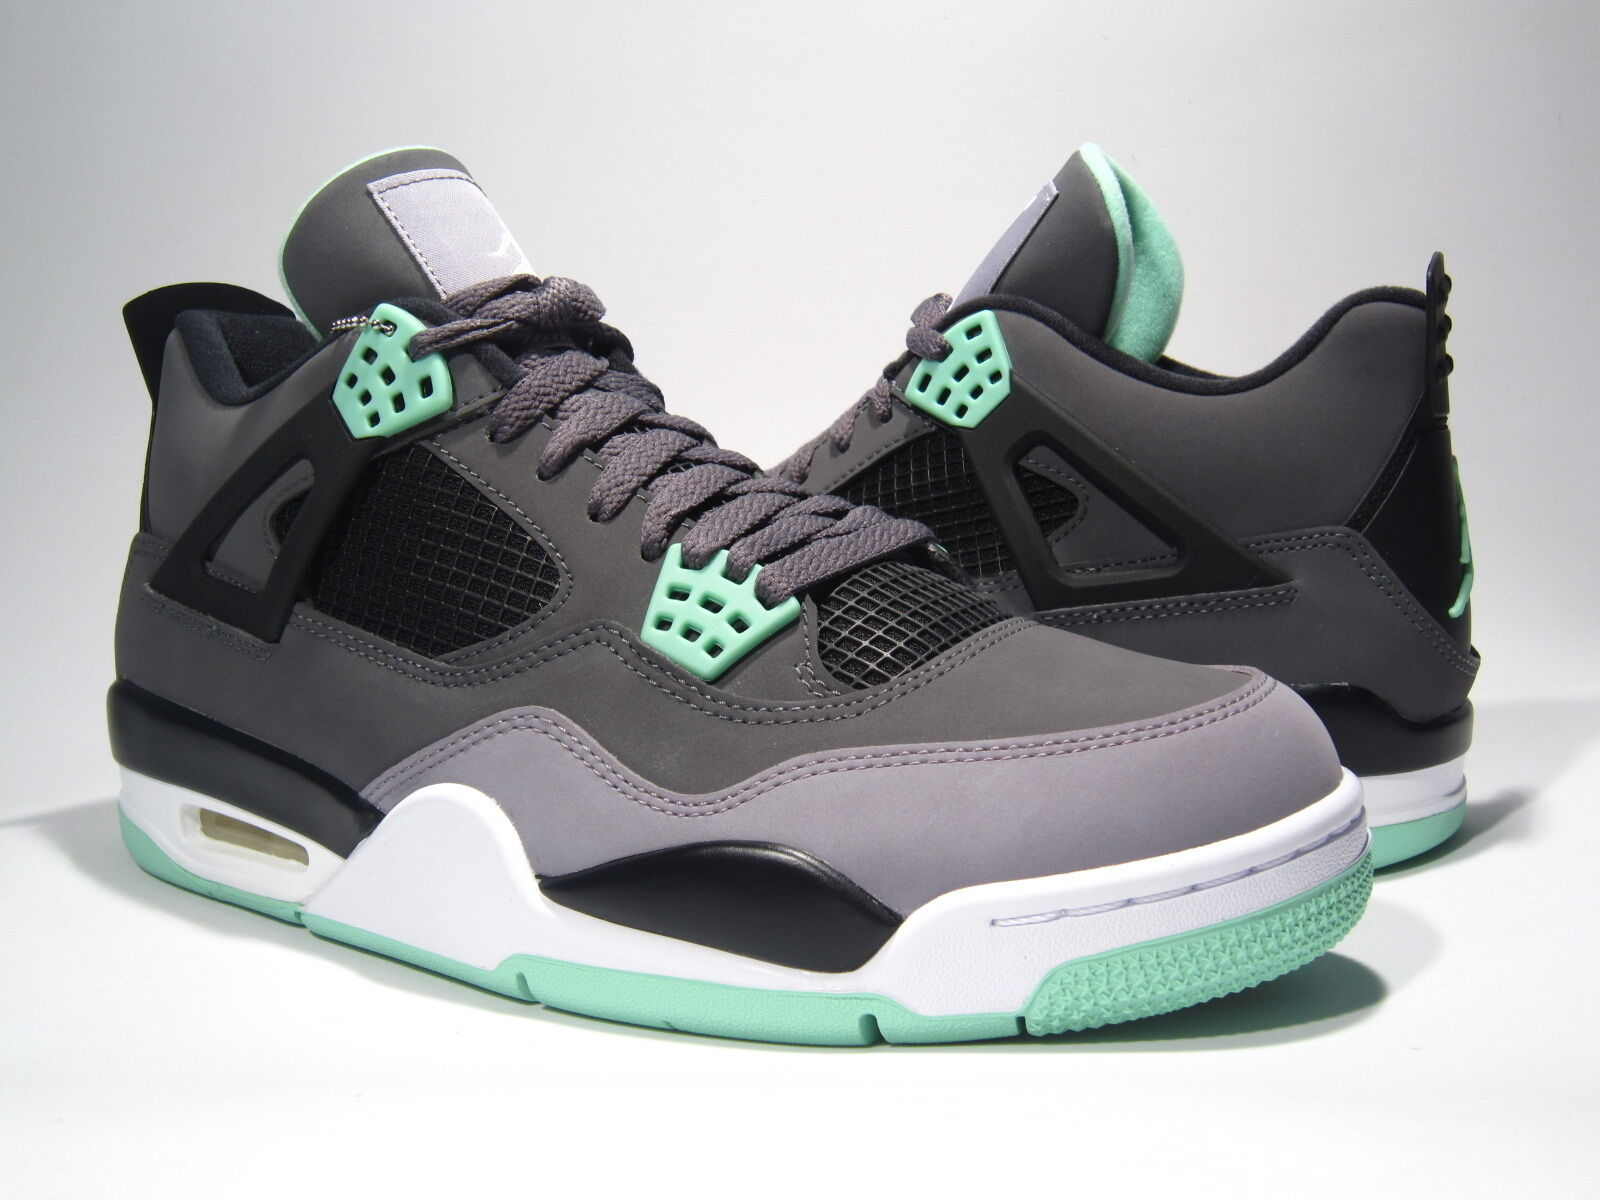 BRAND NEW AIR JORDAN RETRO 4 GREEN GLOW sz8-13 308497 033 TRUSTED SELLER